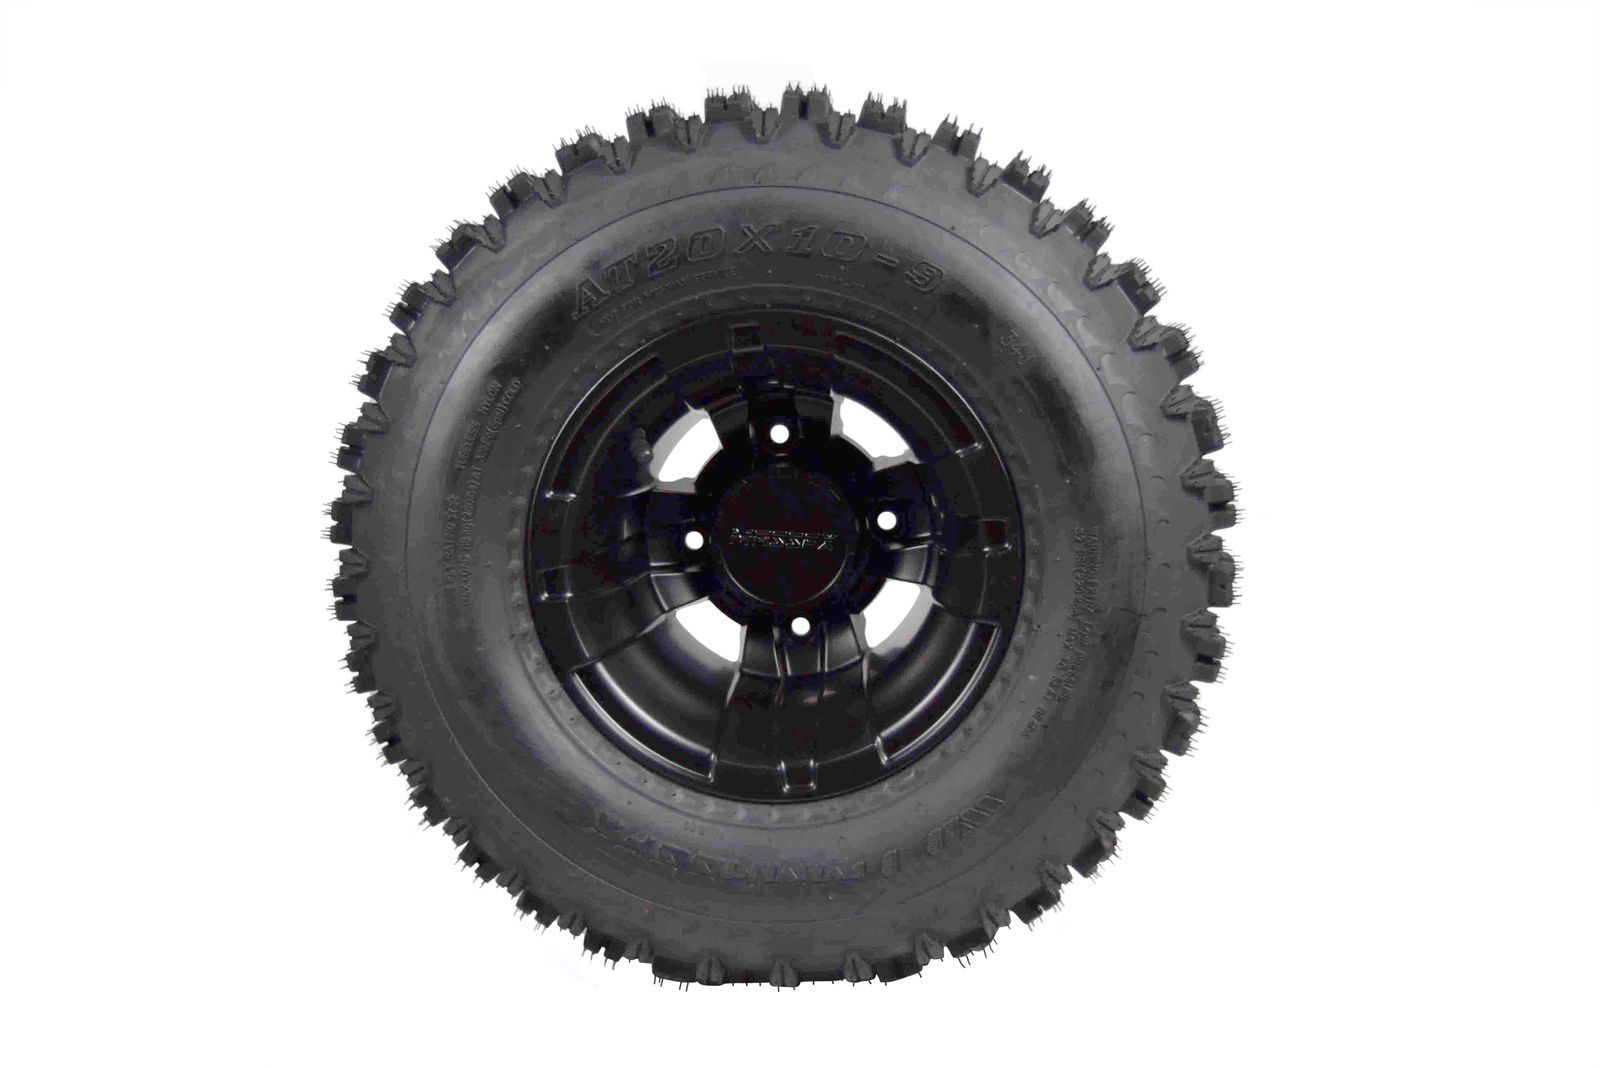 MASSFX-20-Rear-Tire-with-Black-9-Rear-Rim-20x10-9-Tire-9x8-4-115-Wheel-2-PACK-image-2